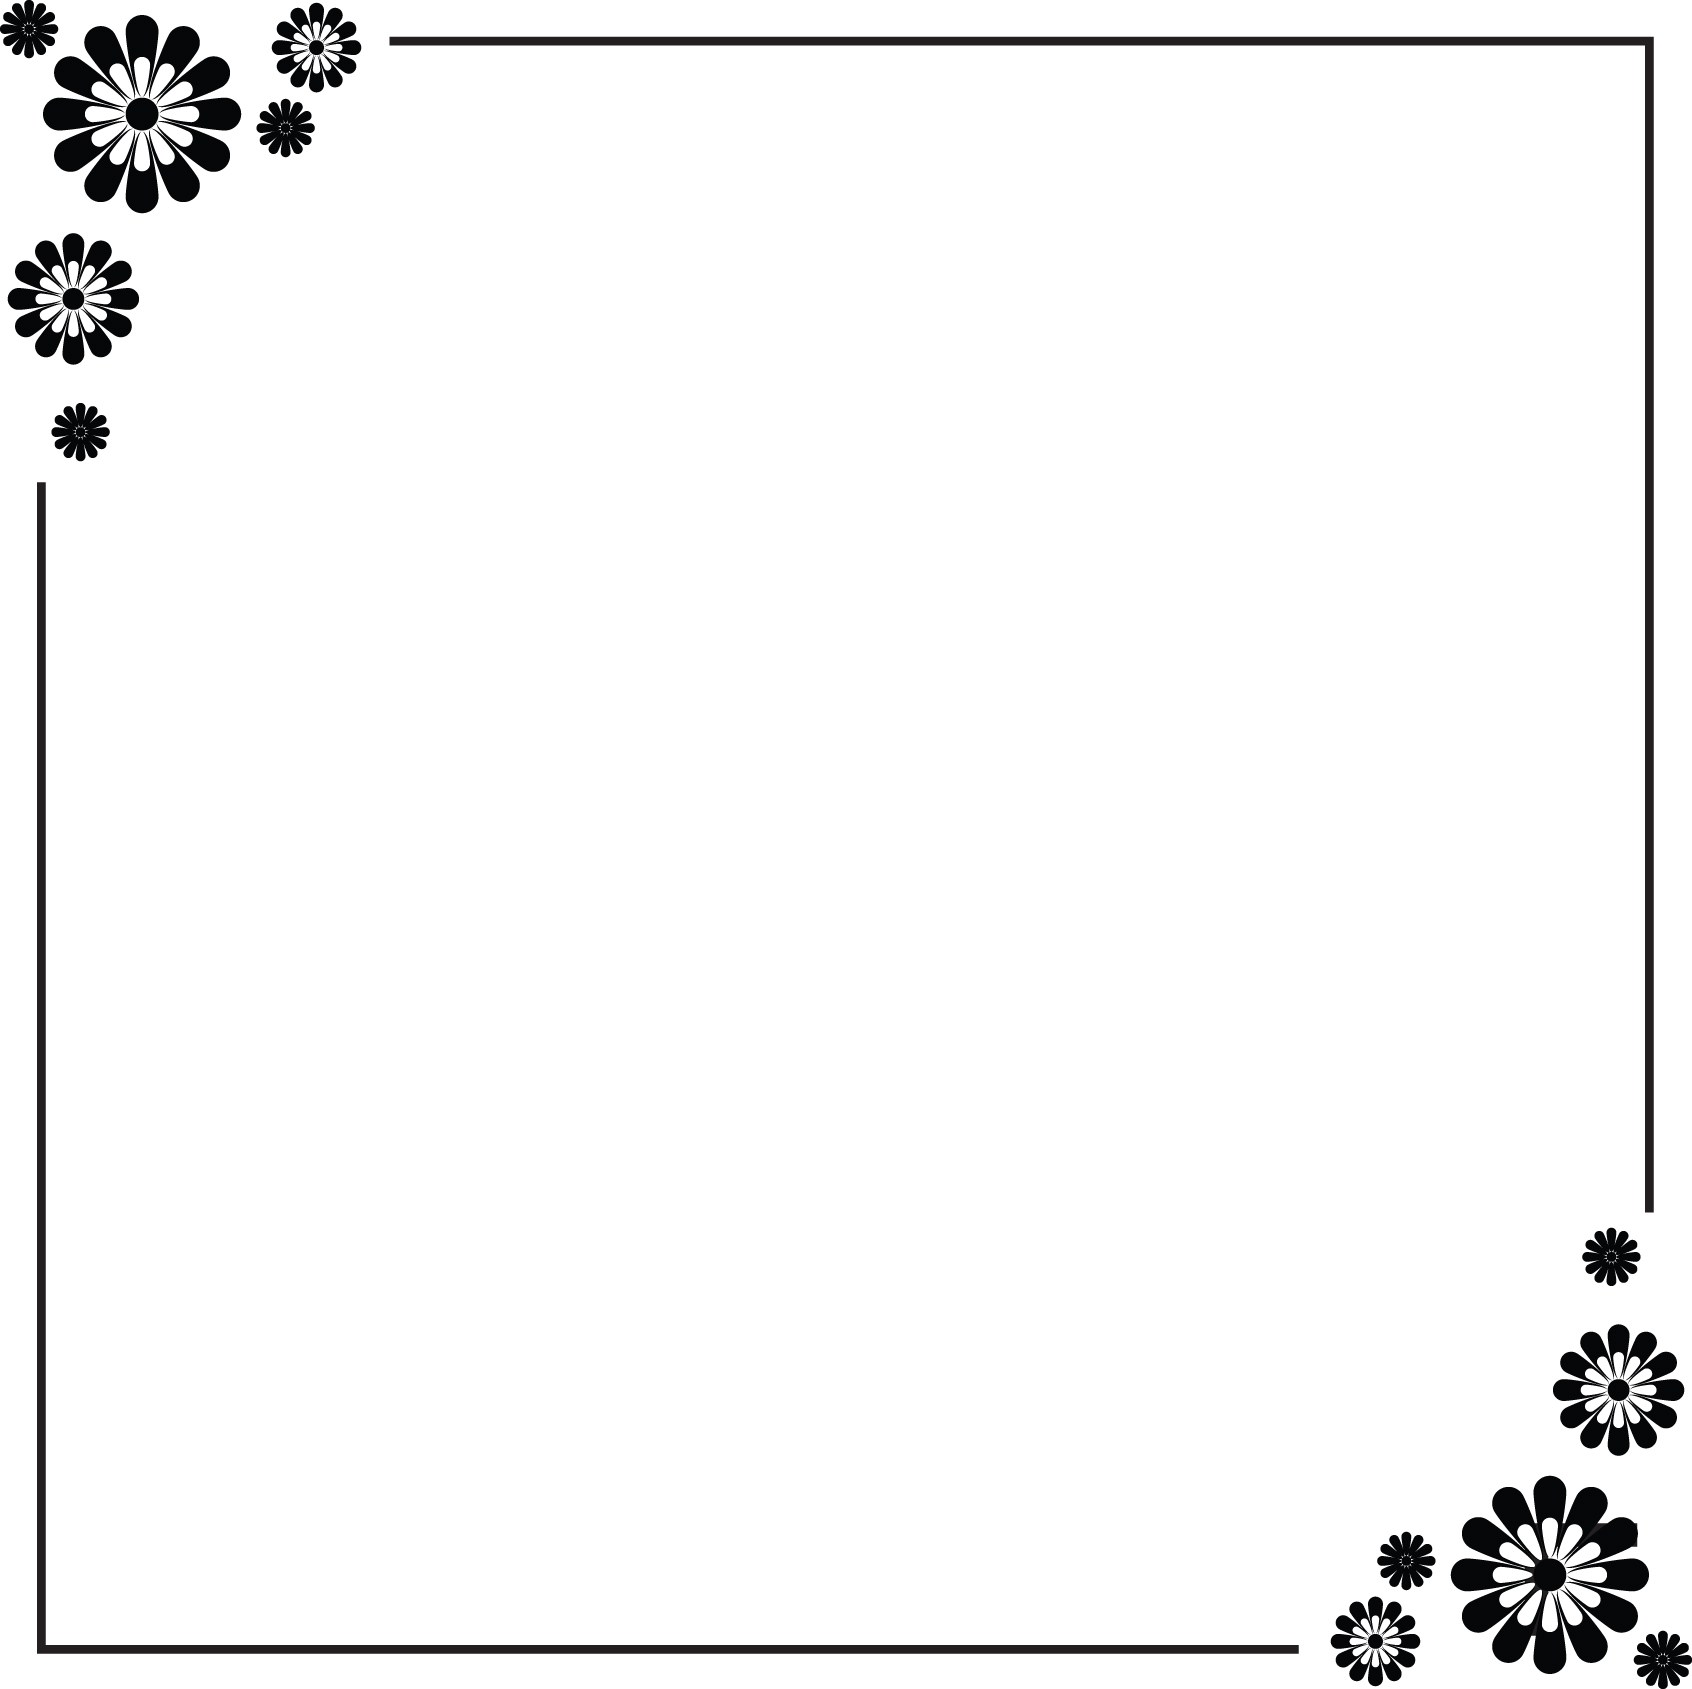 Simple Border Designs For School Projects To Draw Free Download